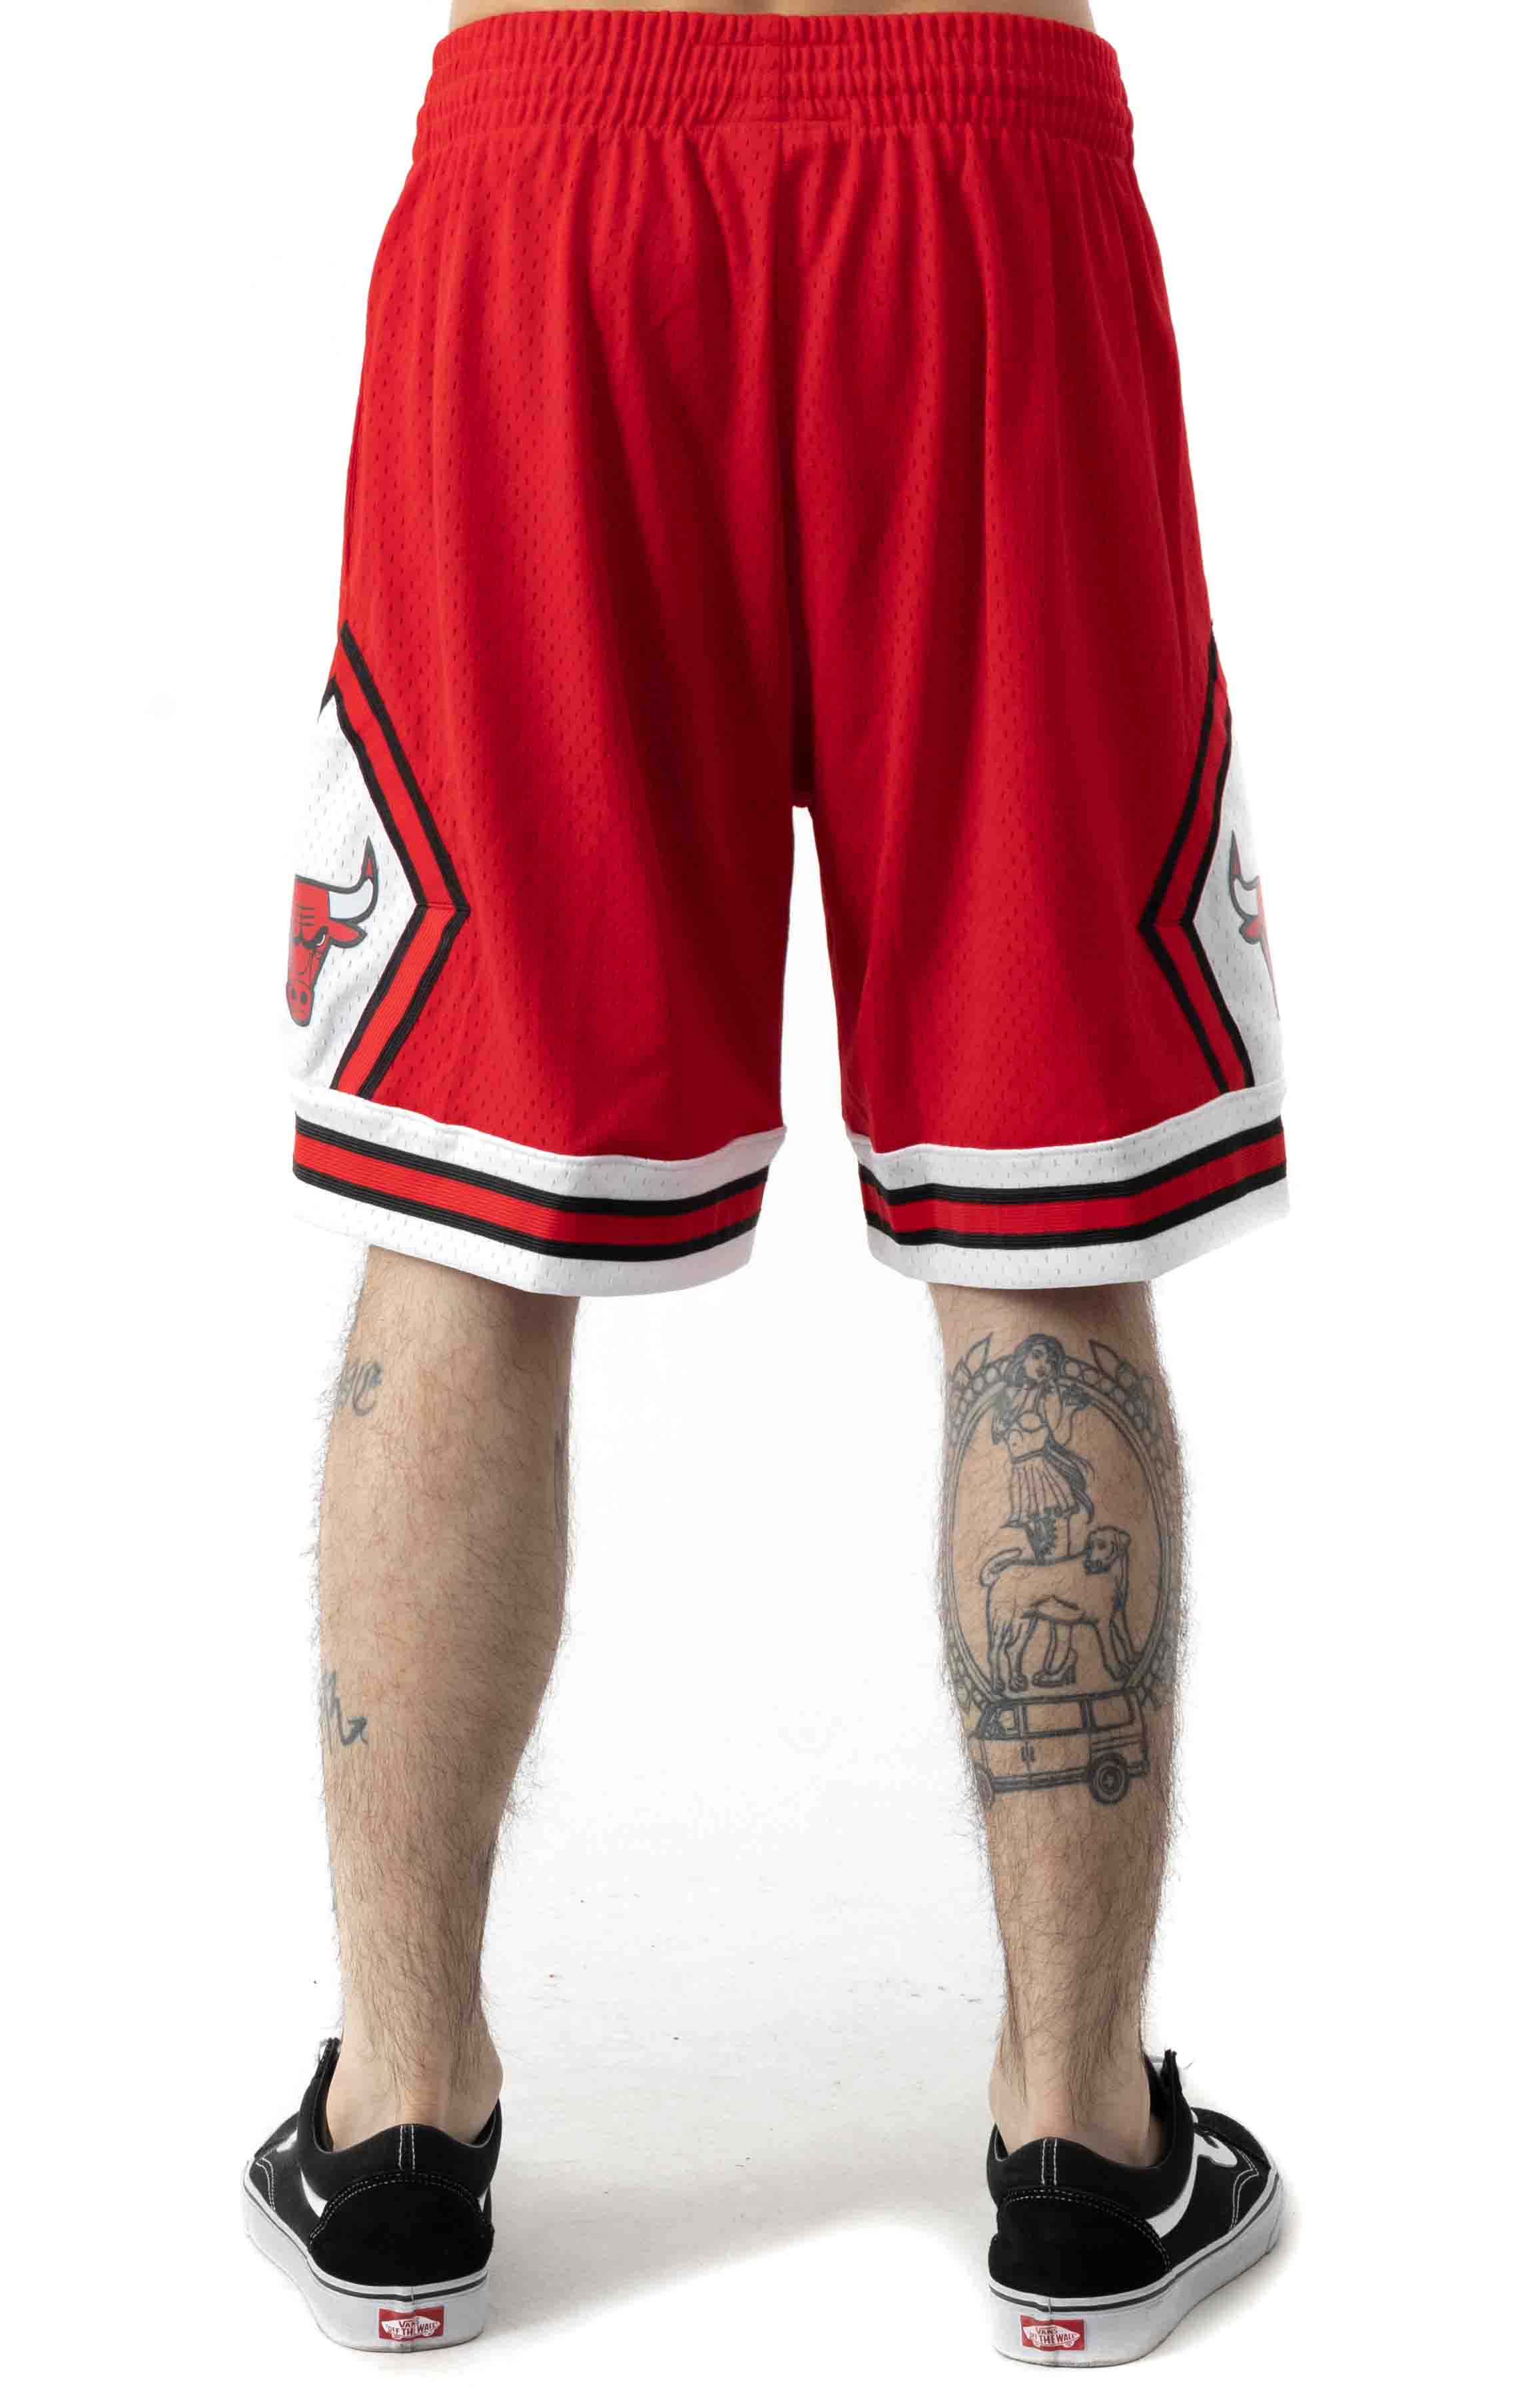 NBA Swingman Road Shorts - Bulls 97-98 3